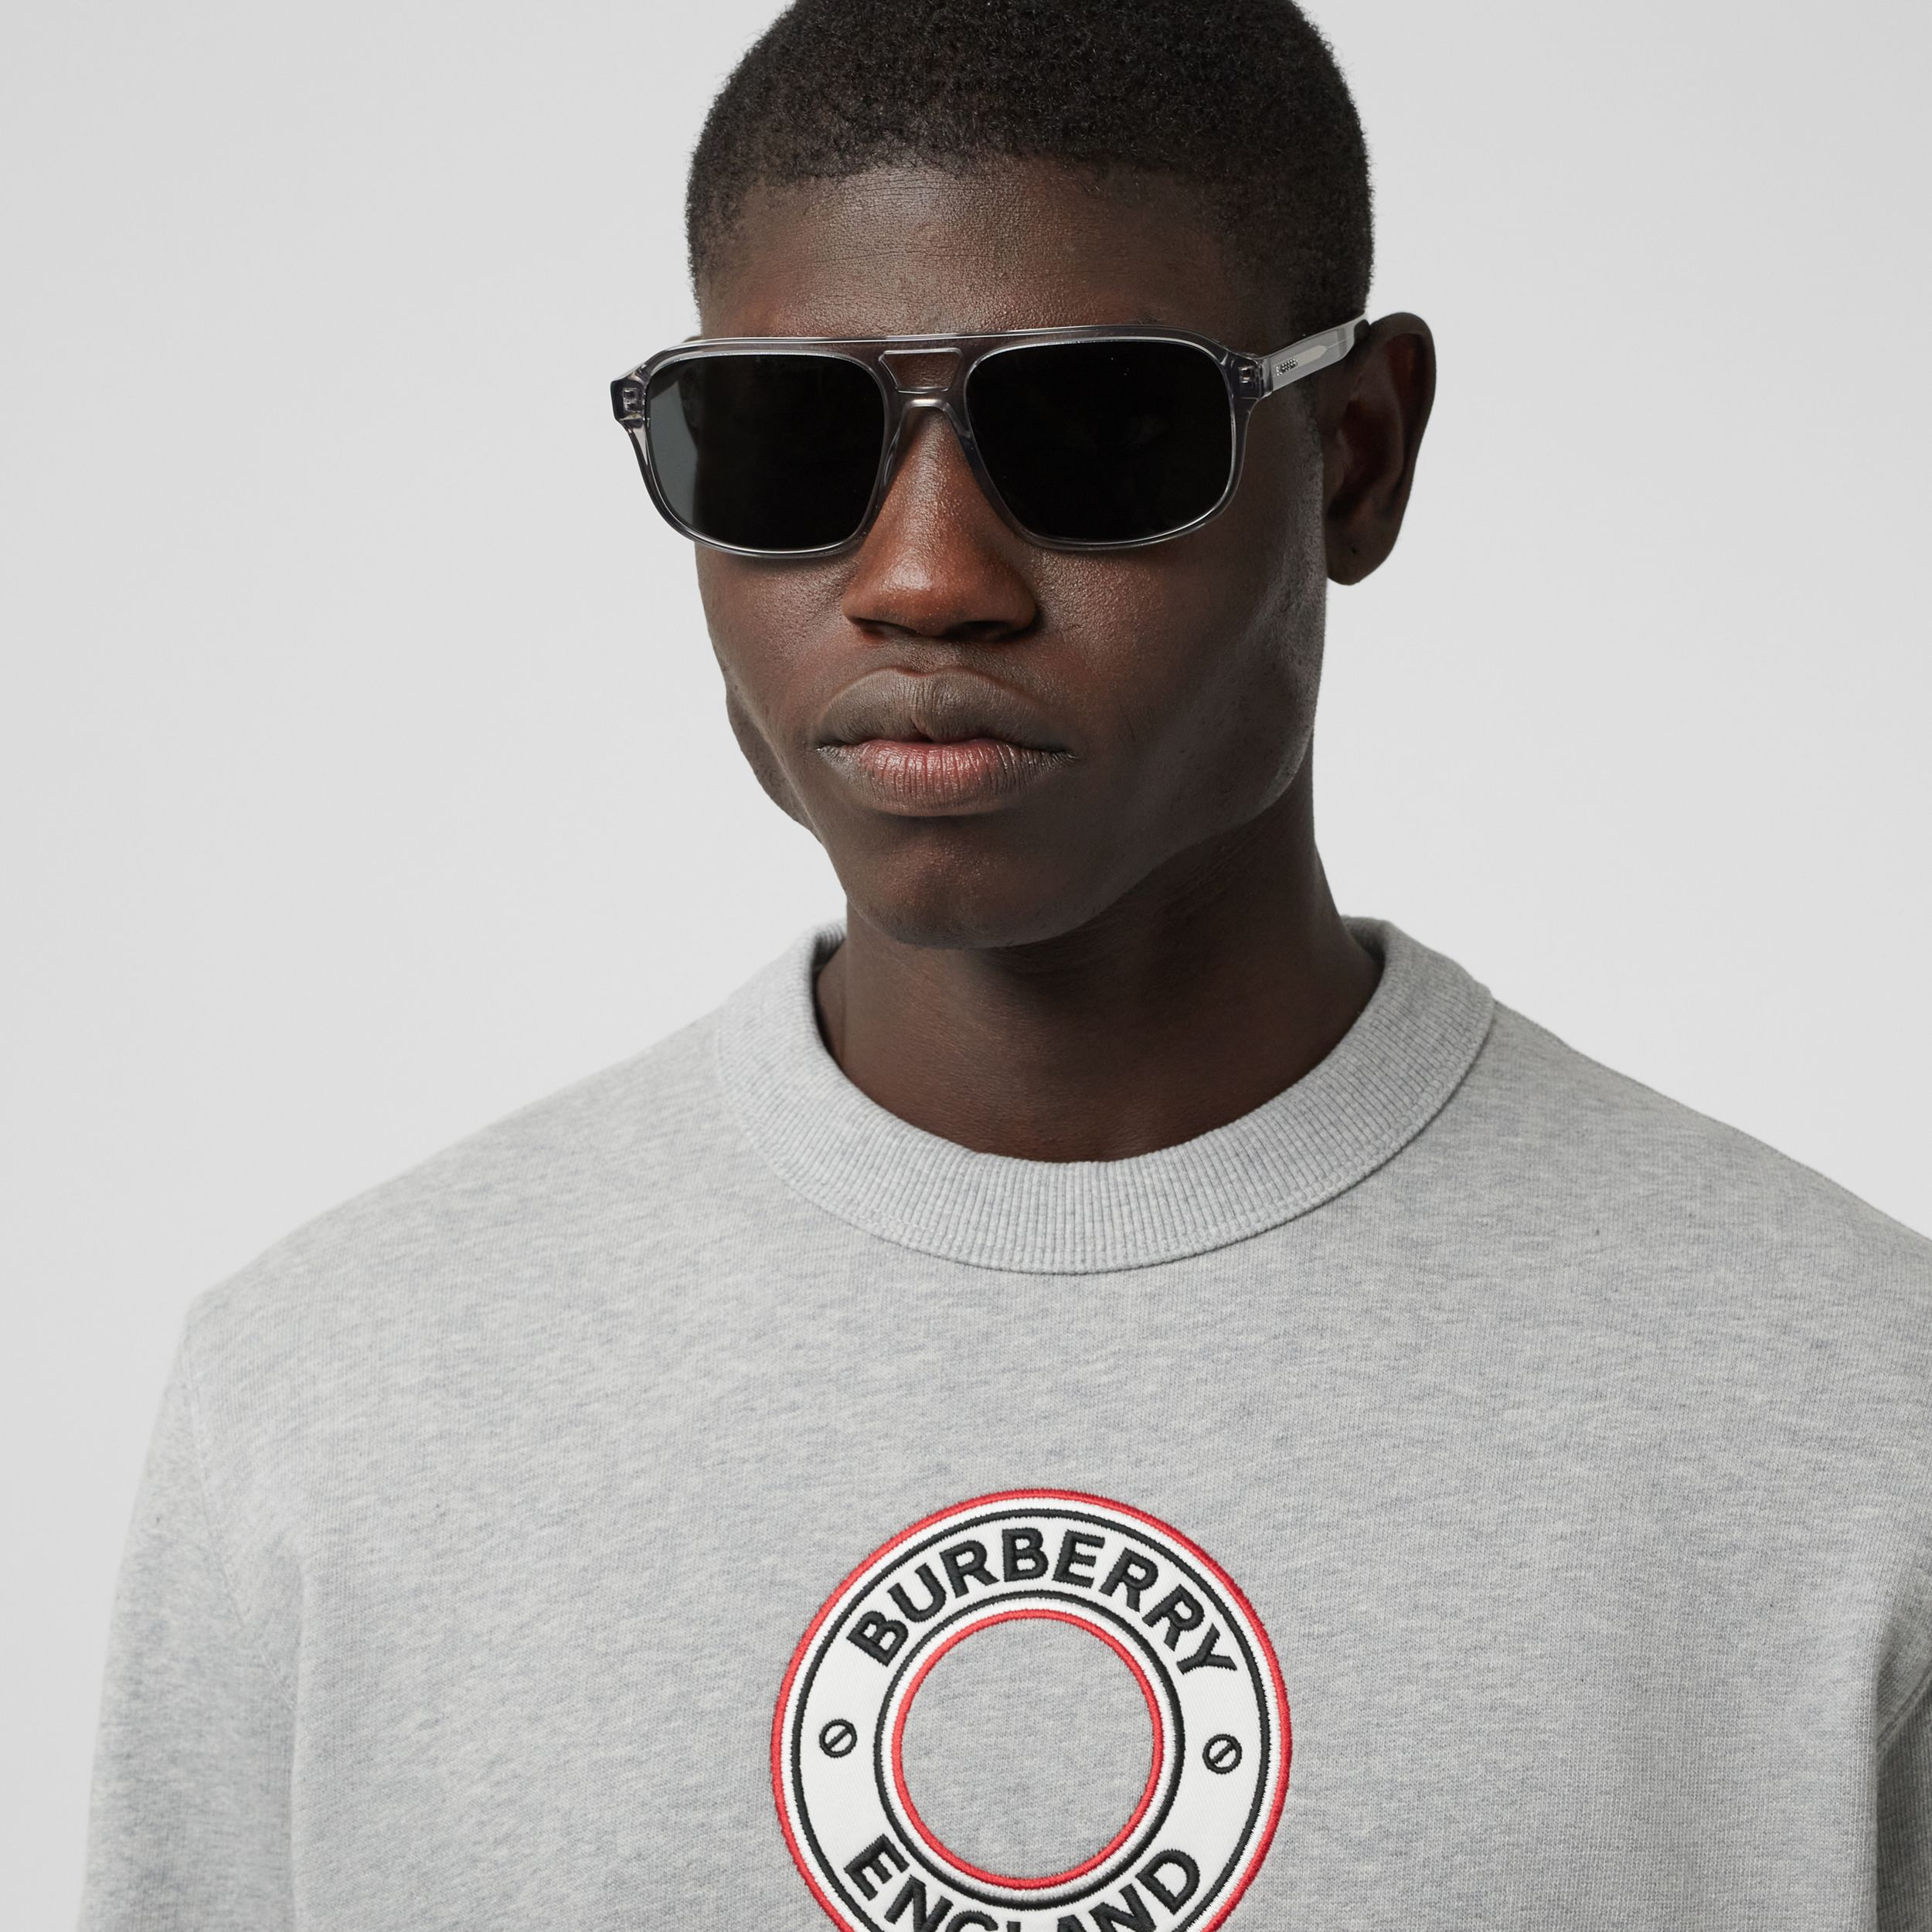 Logo Graphic Appliqué Cotton Sweatshirt in Pale Grey Melange - Men | Burberry Hong Kong S.A.R. - 2